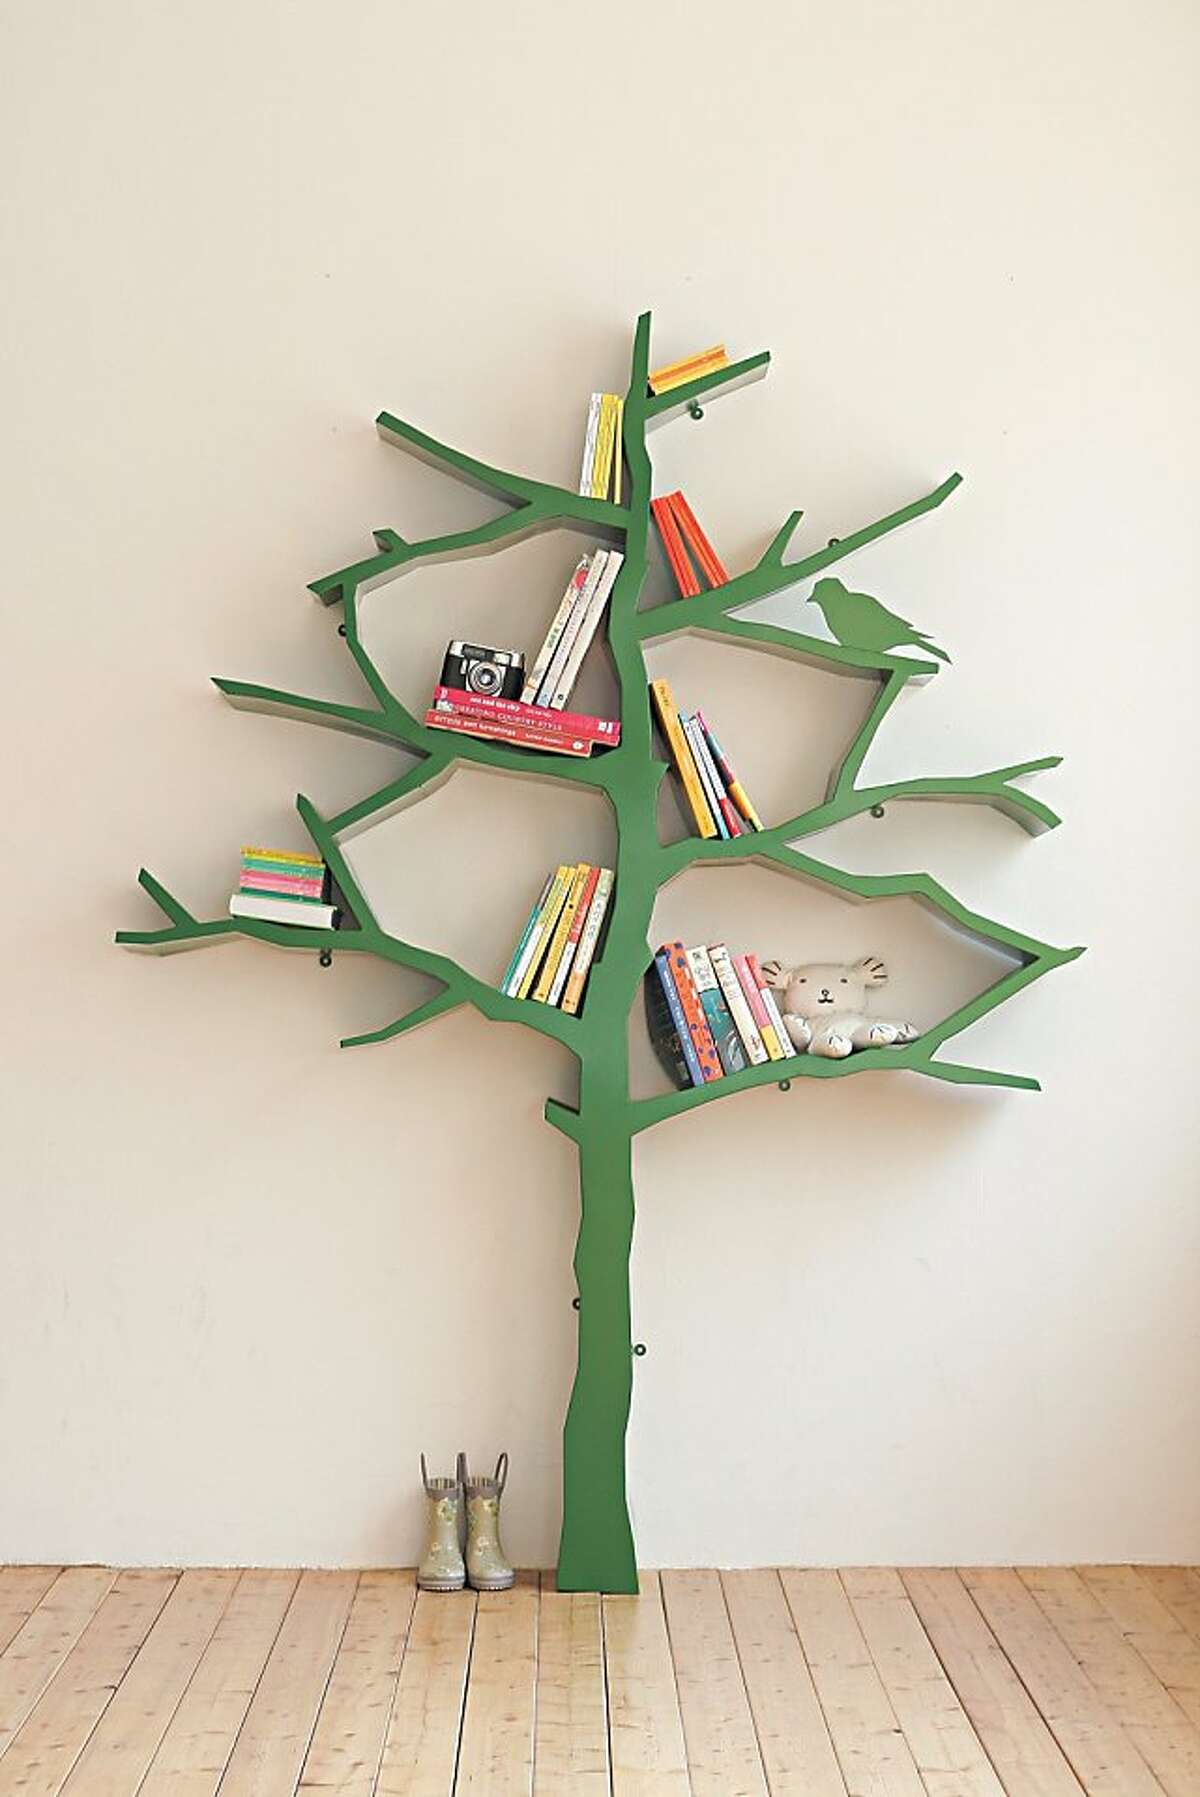 Powder coated steel in a cheery green reminiscent of newly-mown grass forms the Tree bookshelf -- a functional piece of art from Shawn Soh. The bookshelf dynamically changes when books are stacked and/or removed from the tree branches. www.designartist.co.kr.